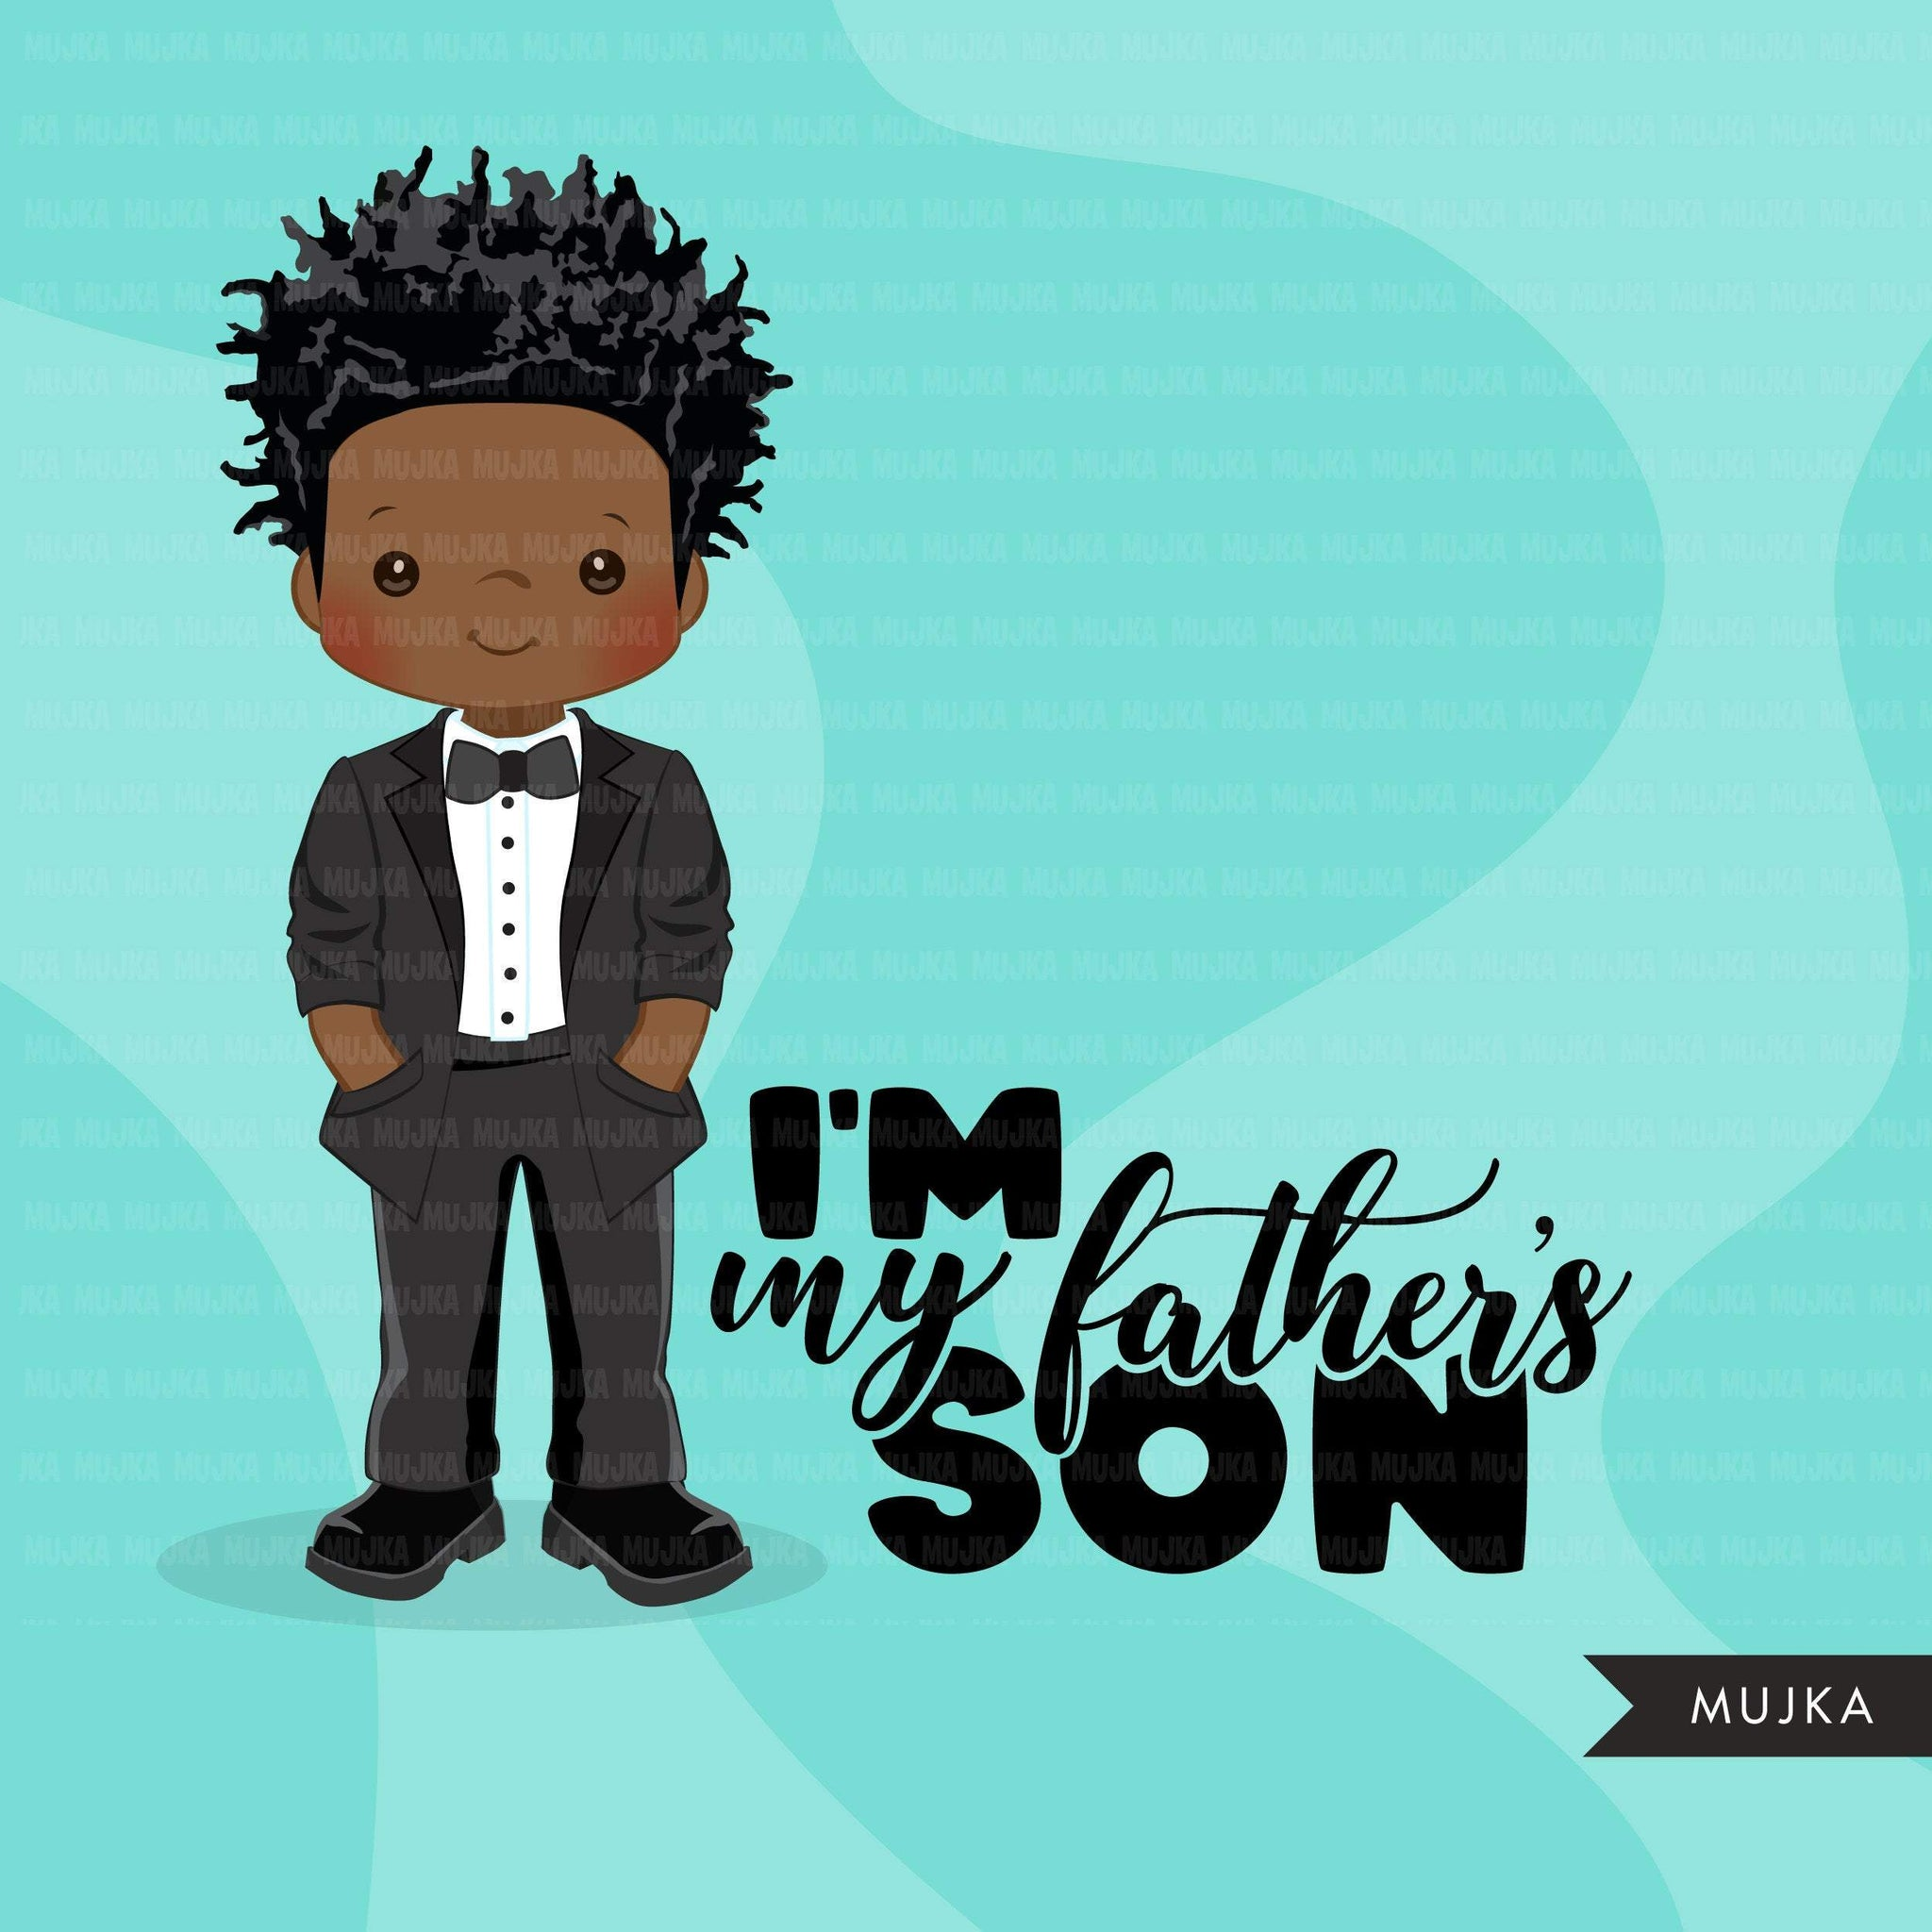 Father's Day clipart, Black boy with tuxedo, I am my father's son quote, dad graphics, commercial use PNG clip art